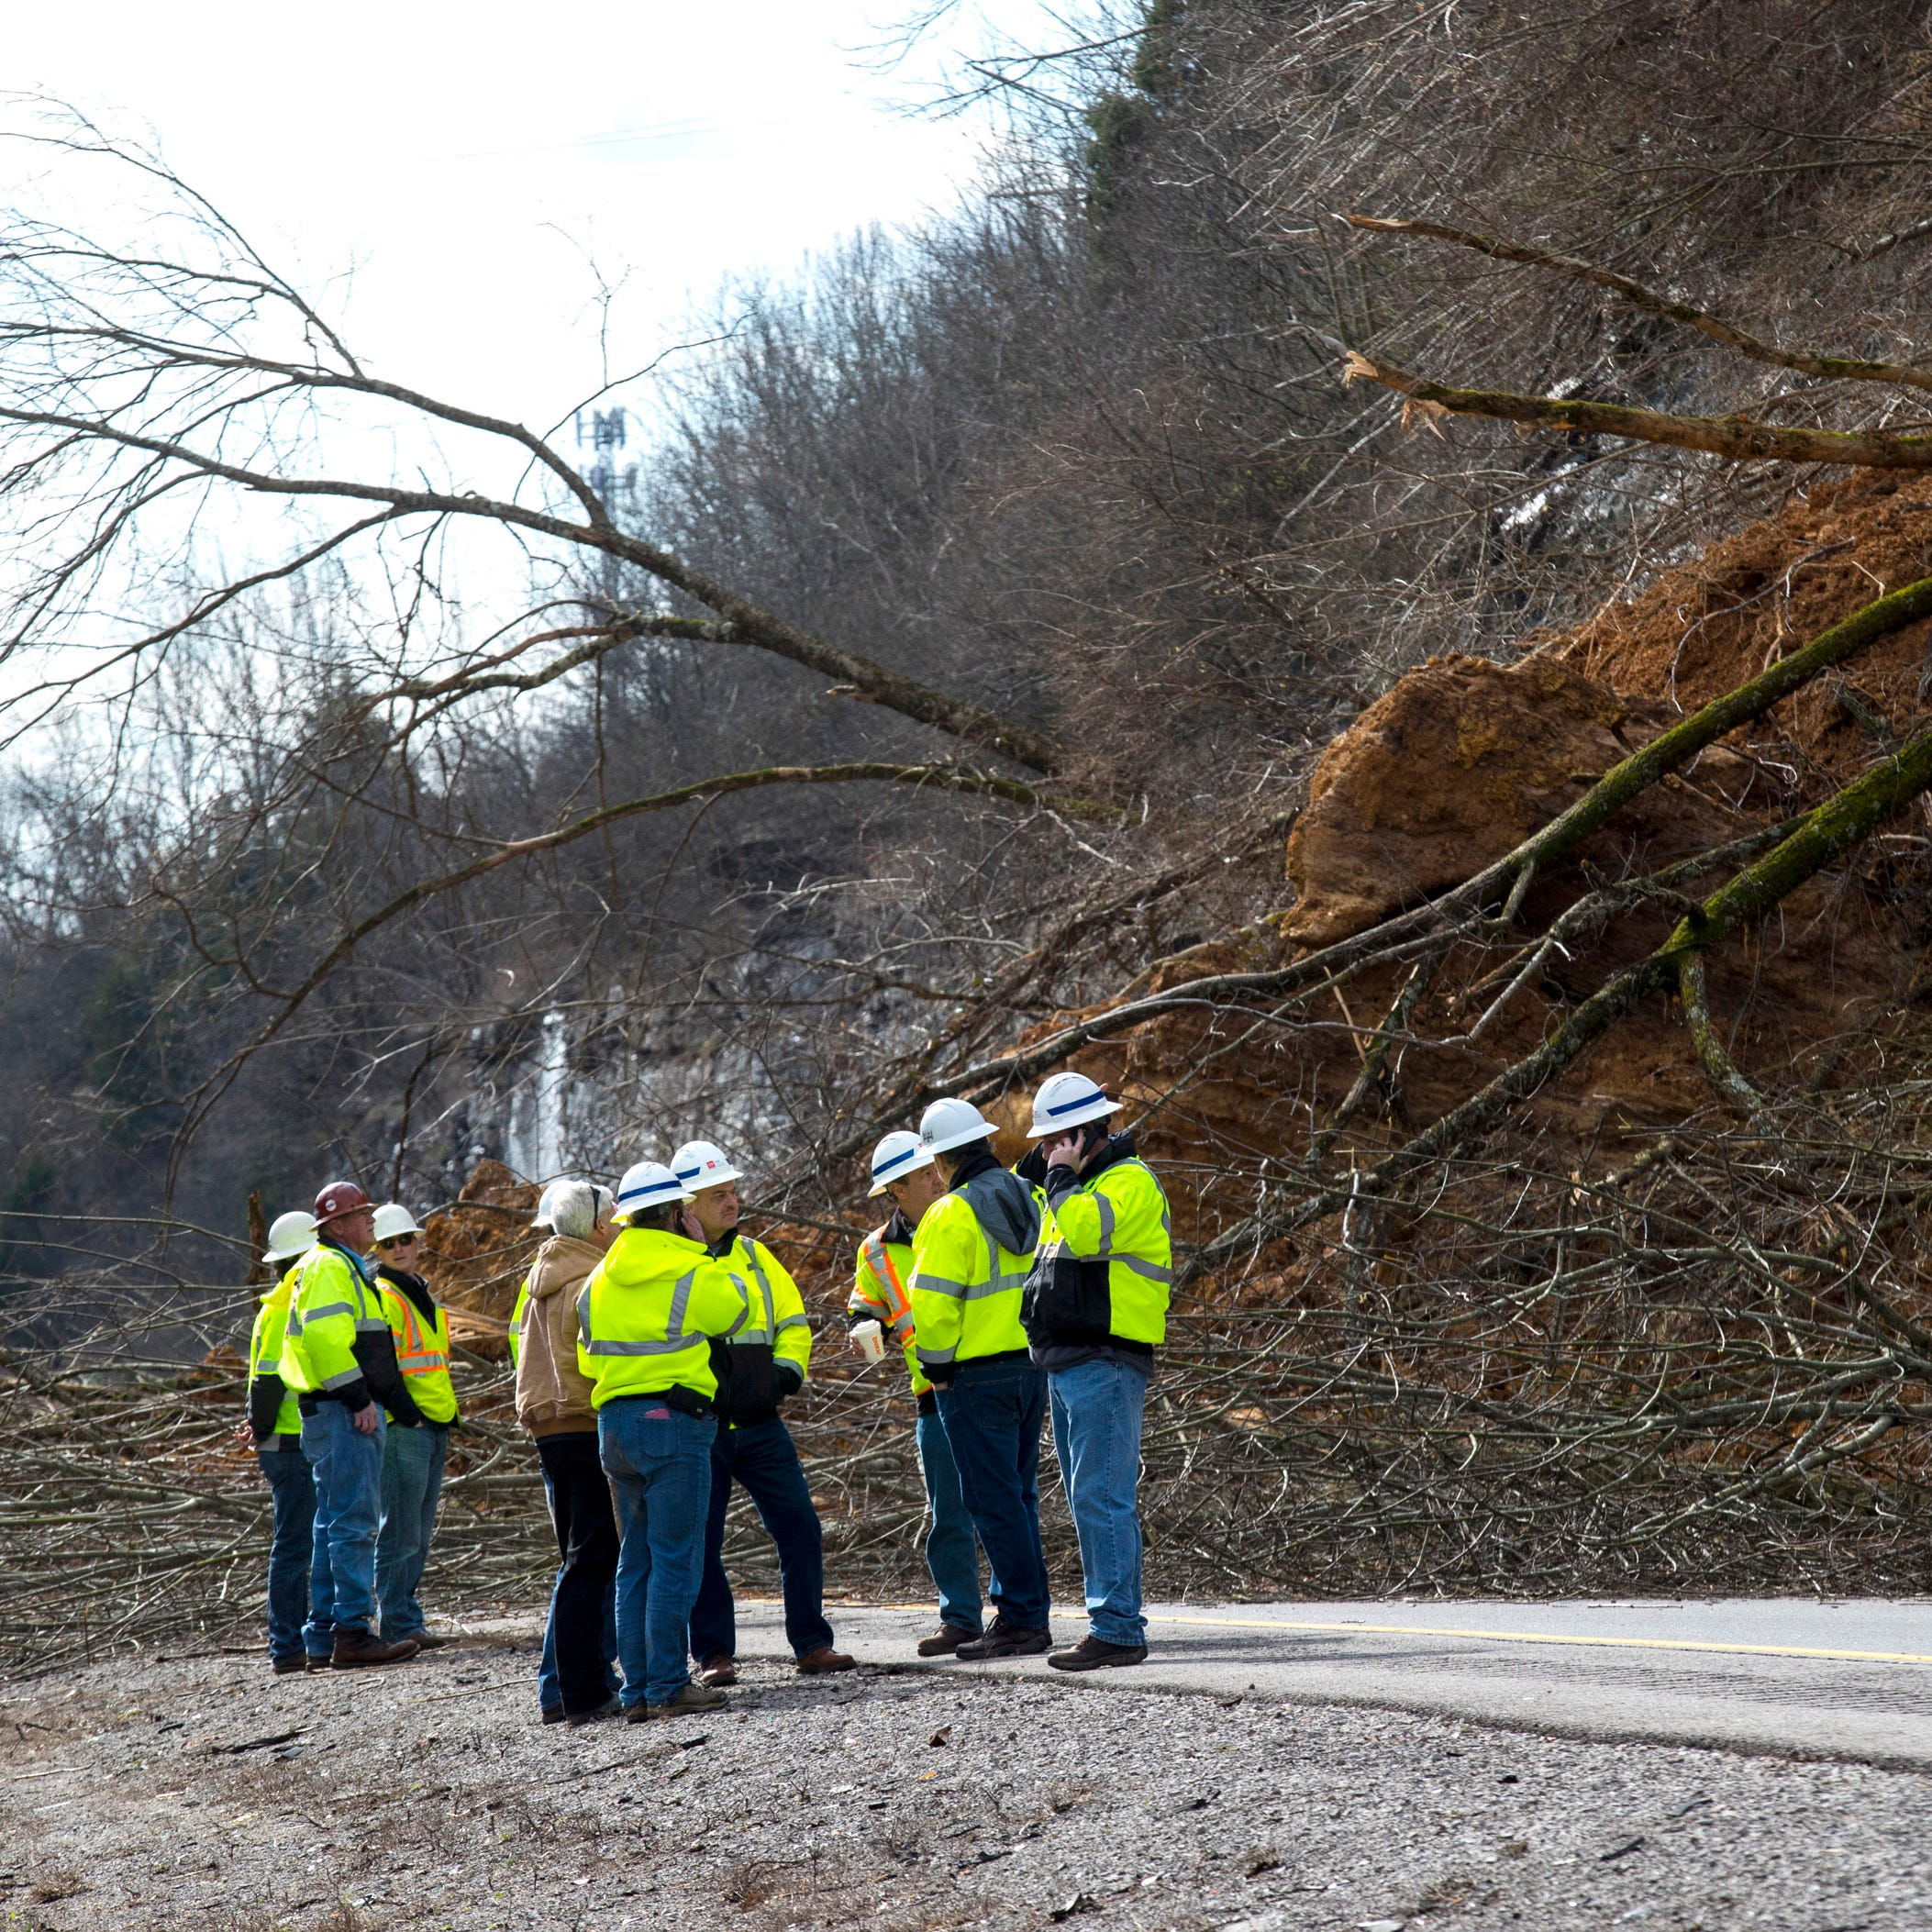 I-24 is closed for at least a week due to a mudslide. So what does that mean for your commute to Nashville?